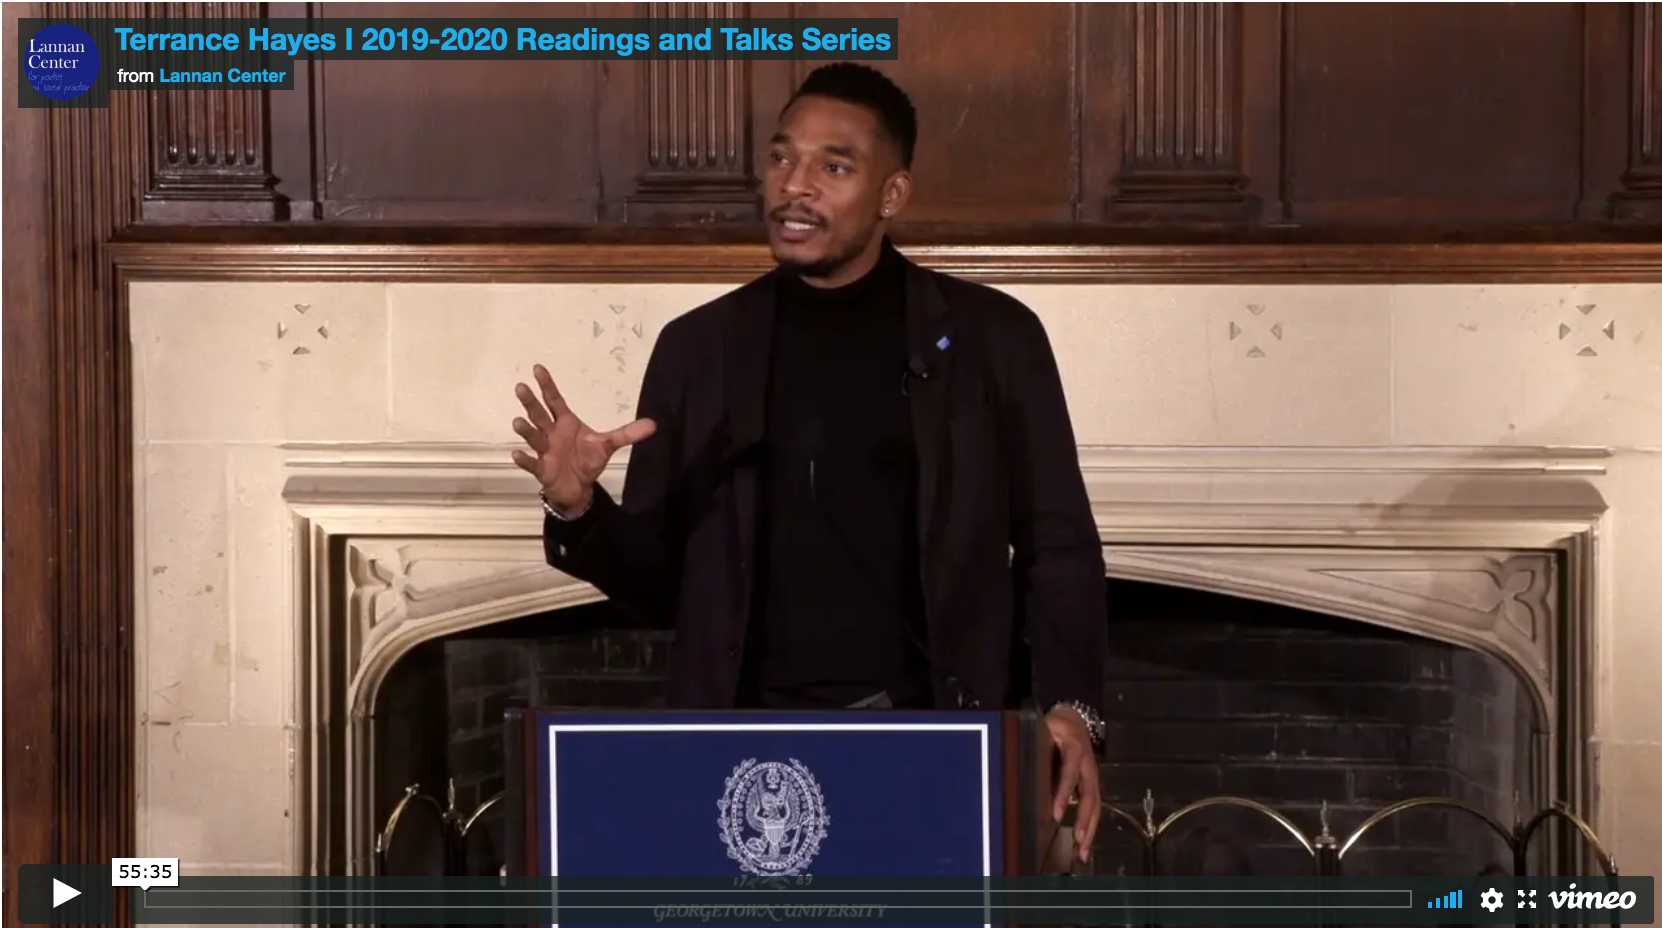 Terrance Hayes Reading